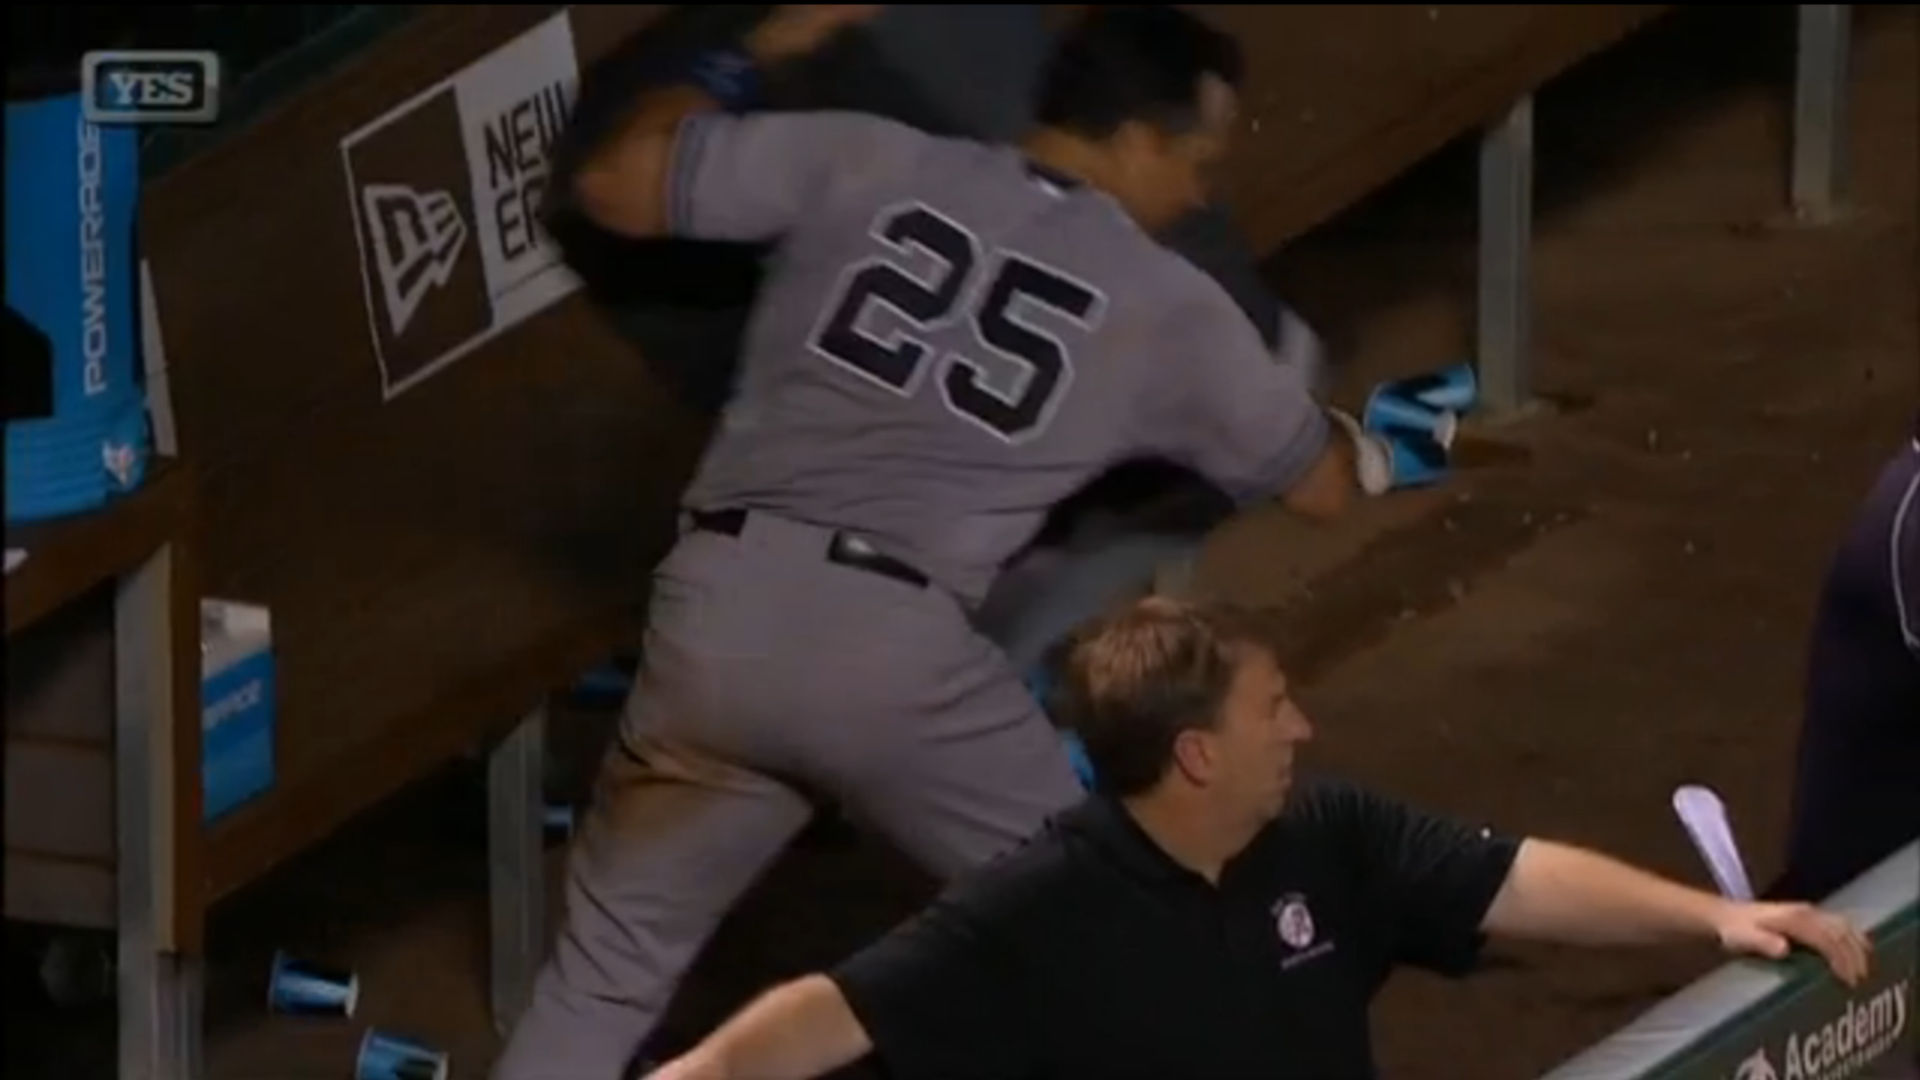 Yankees' Mark Teixeira destroys trash can, rips coach after frustrating night